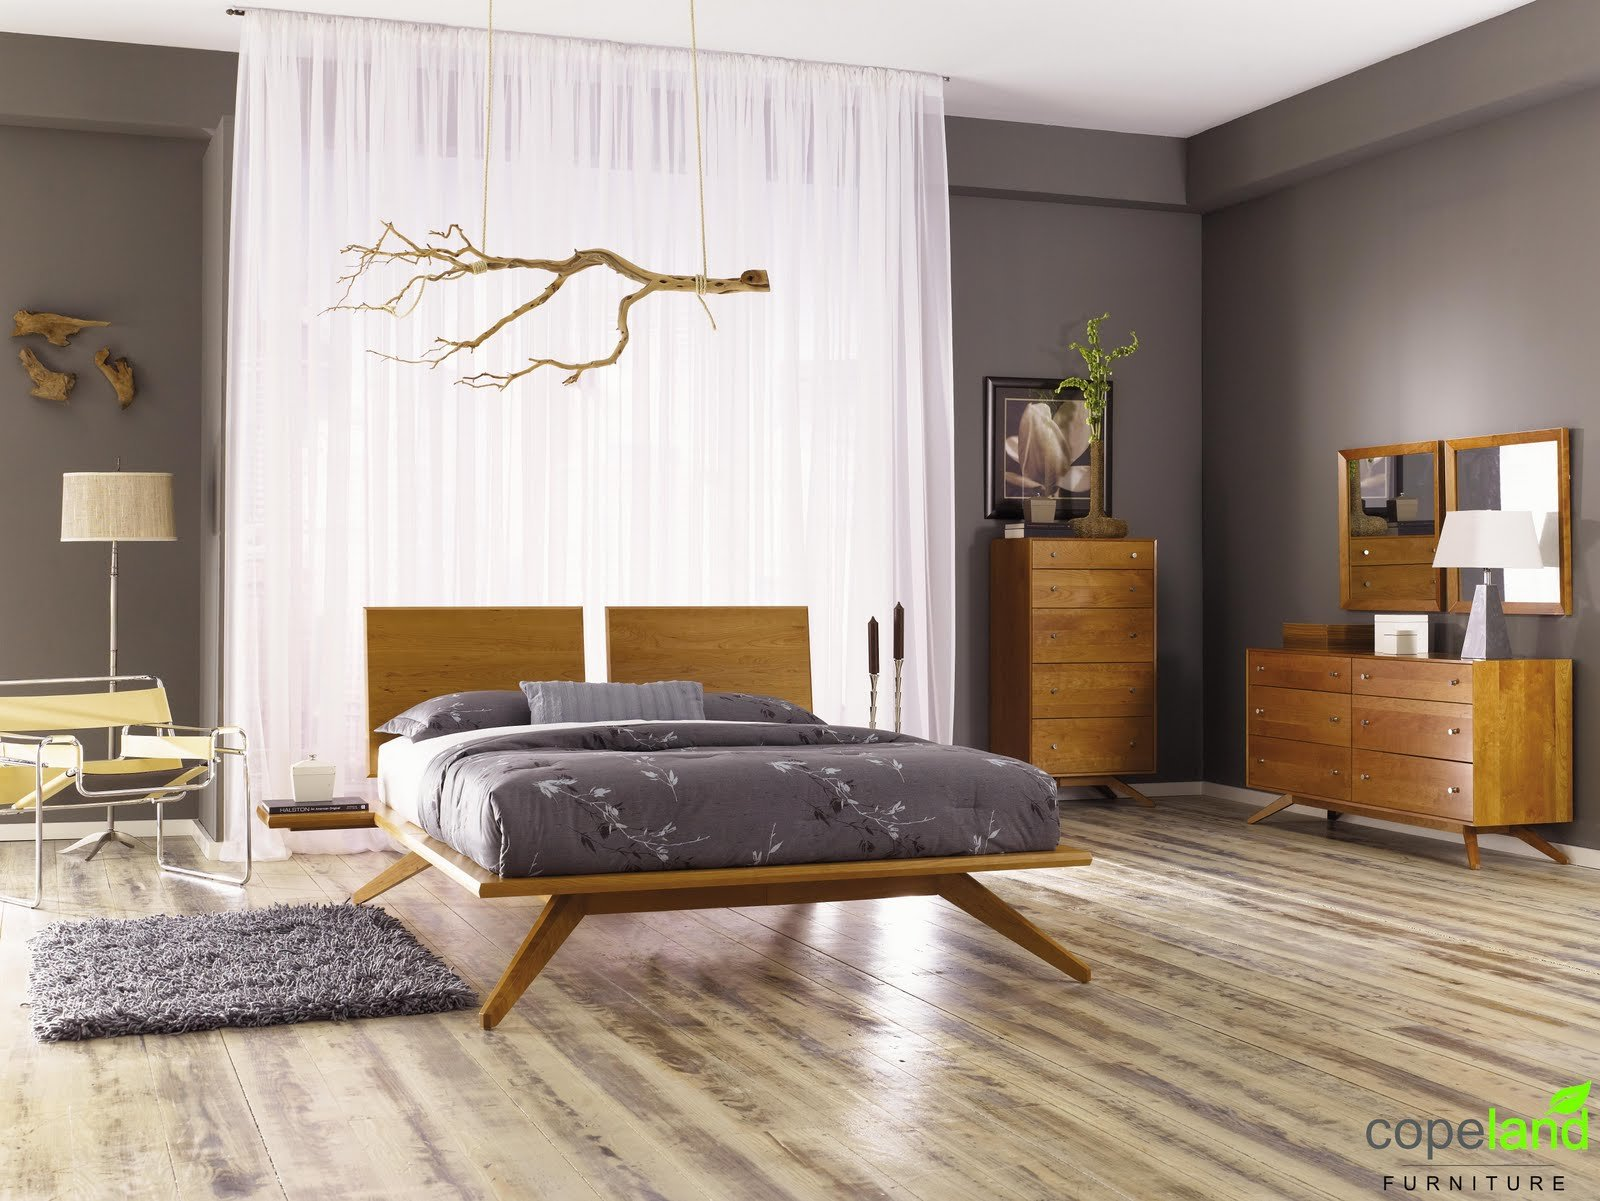 Best Danish Furniture Of Colorado Copeland Furniture With Pictures